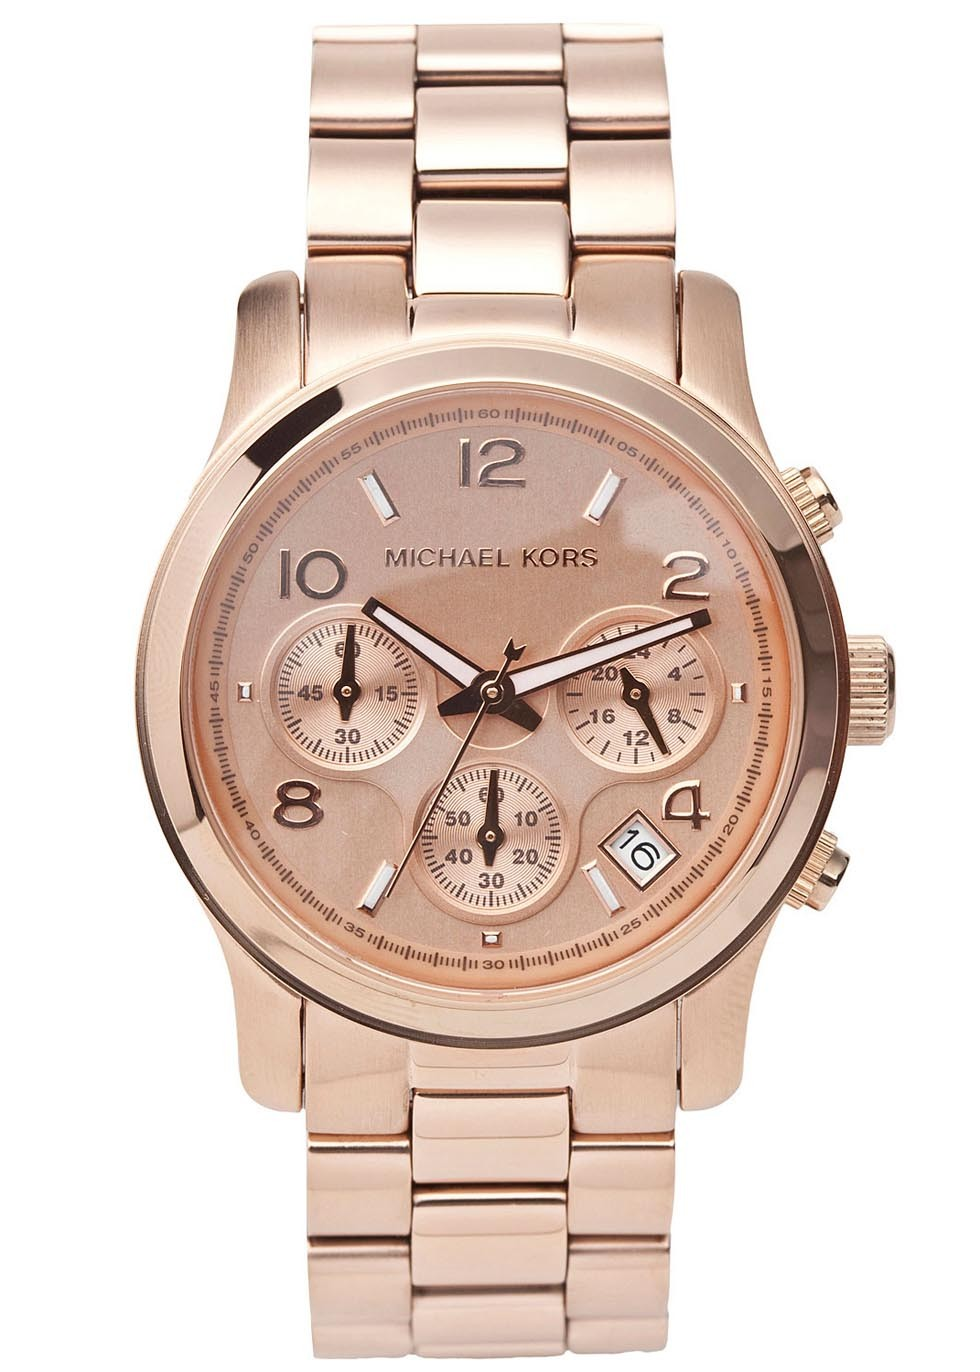 Michael Kors Rose gold tone stainless steel chronograph watch